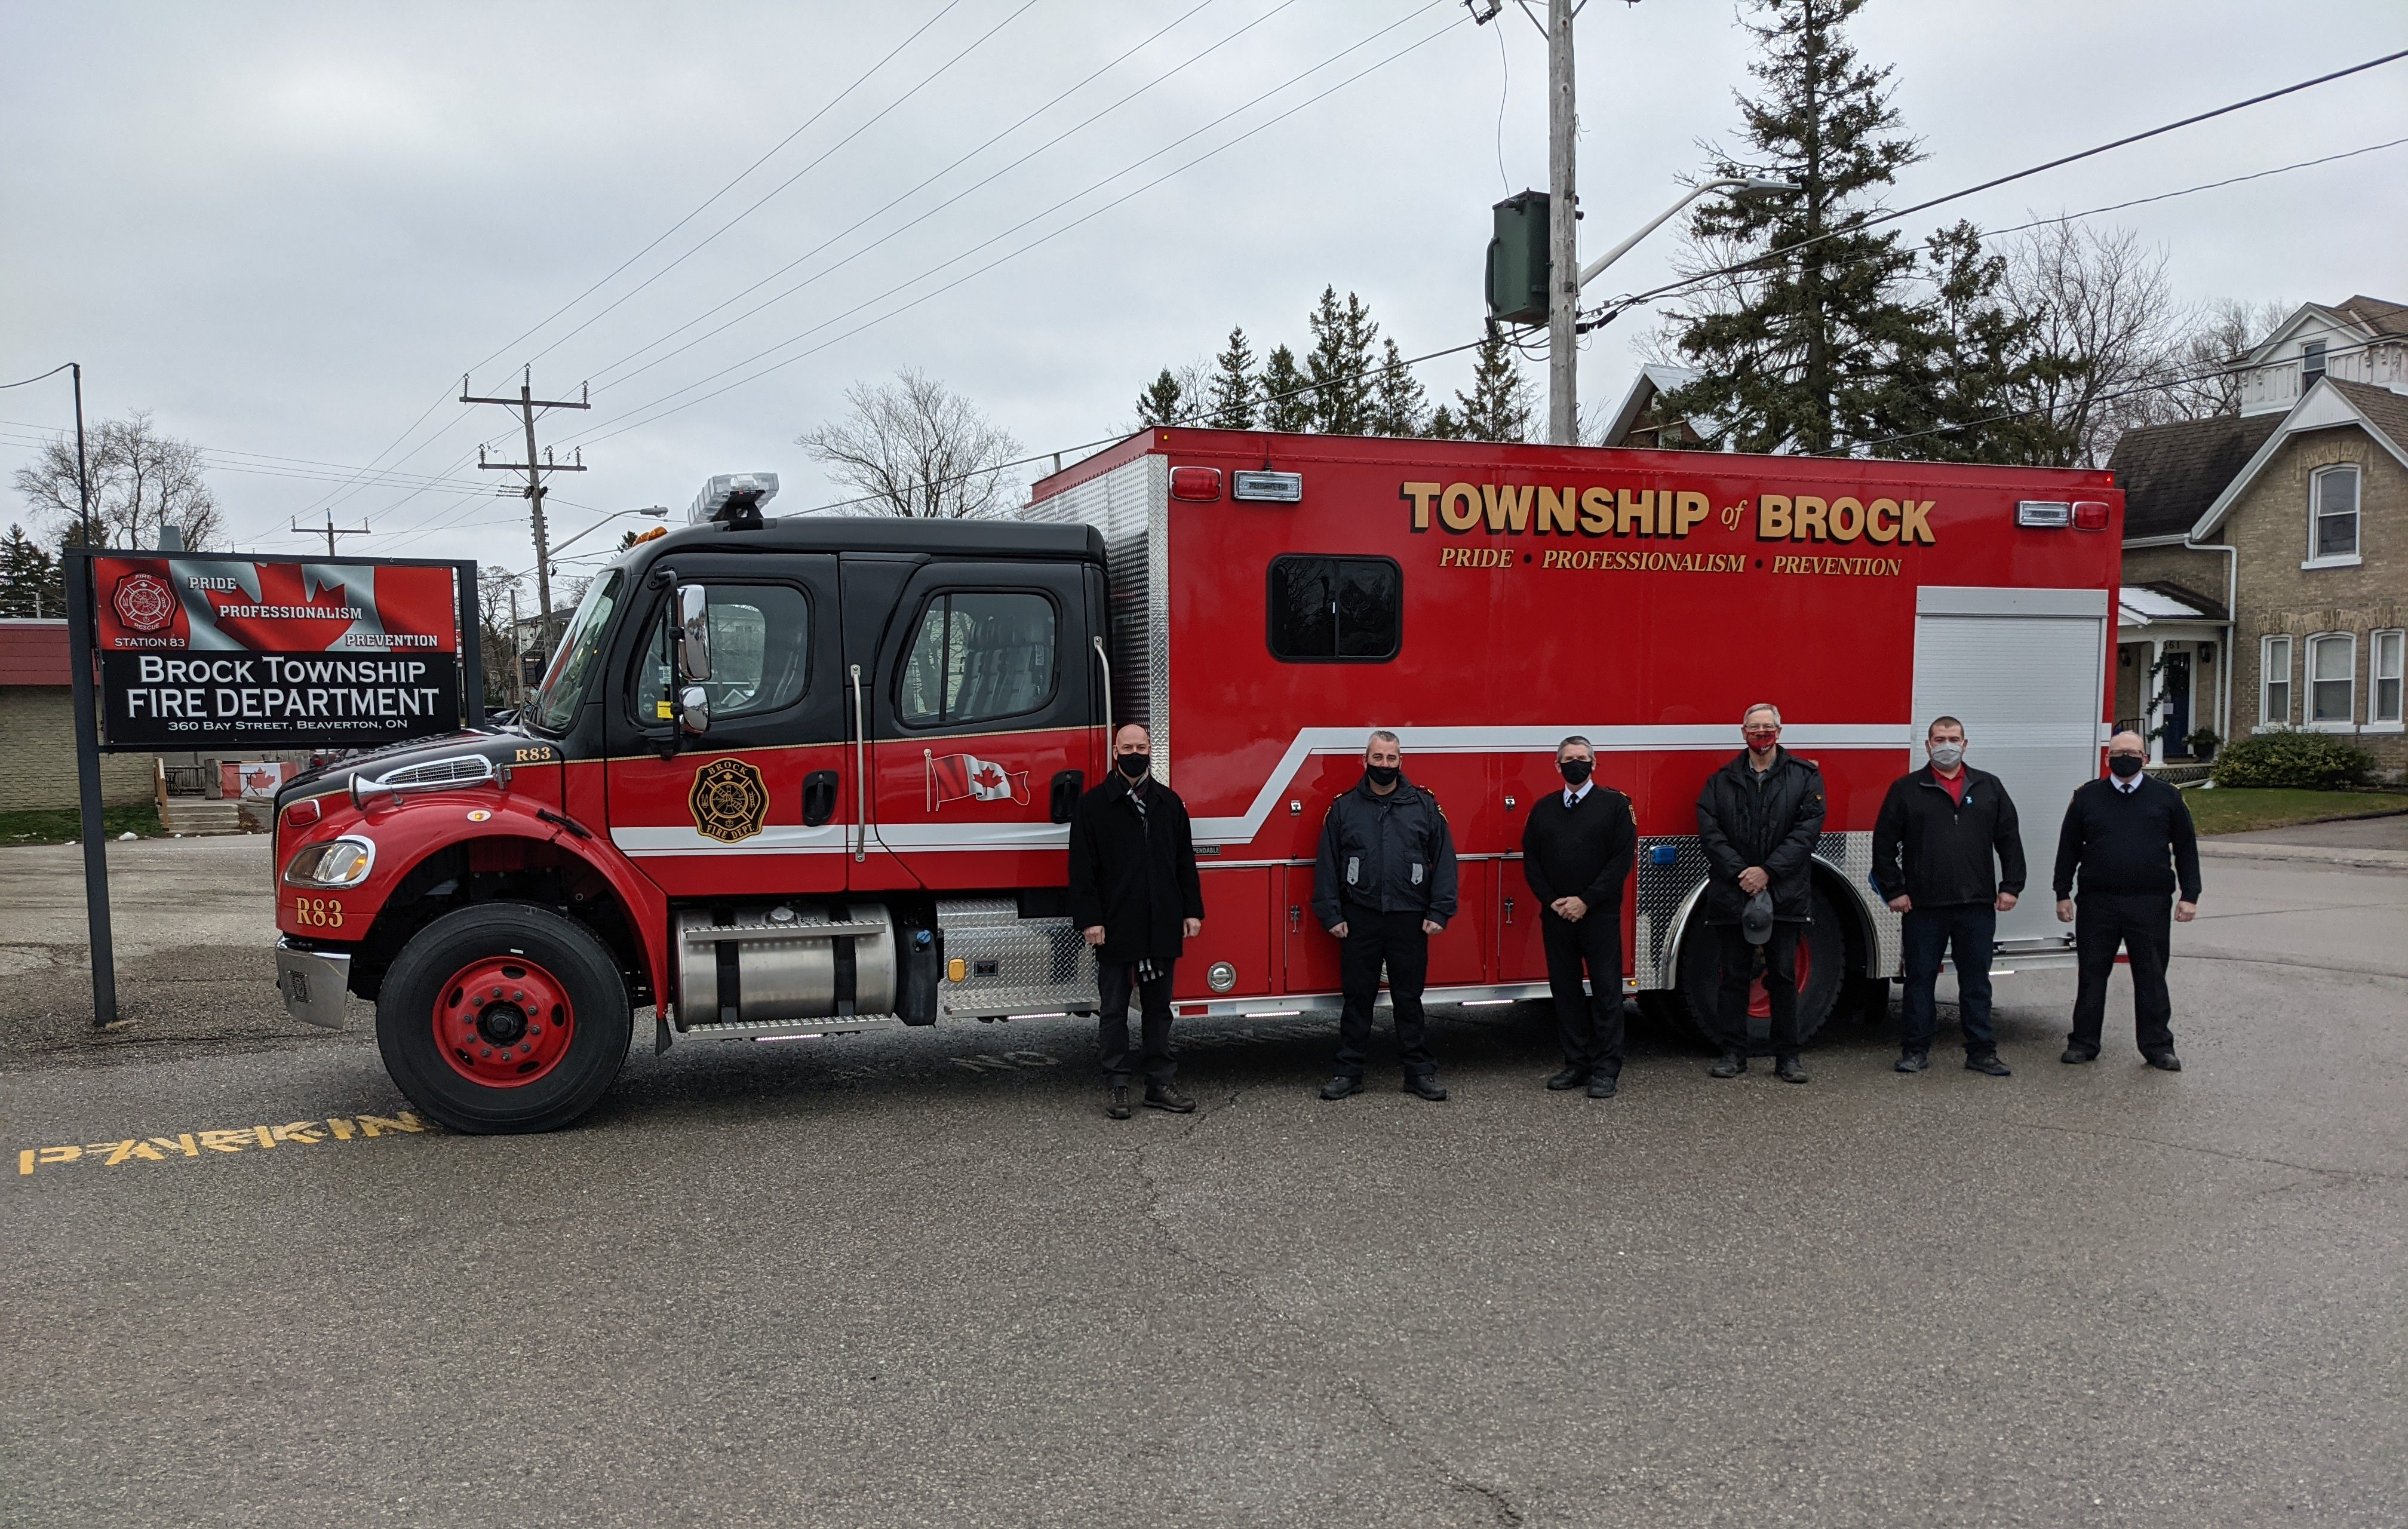 New rescue truck for Brock Township Fire Department